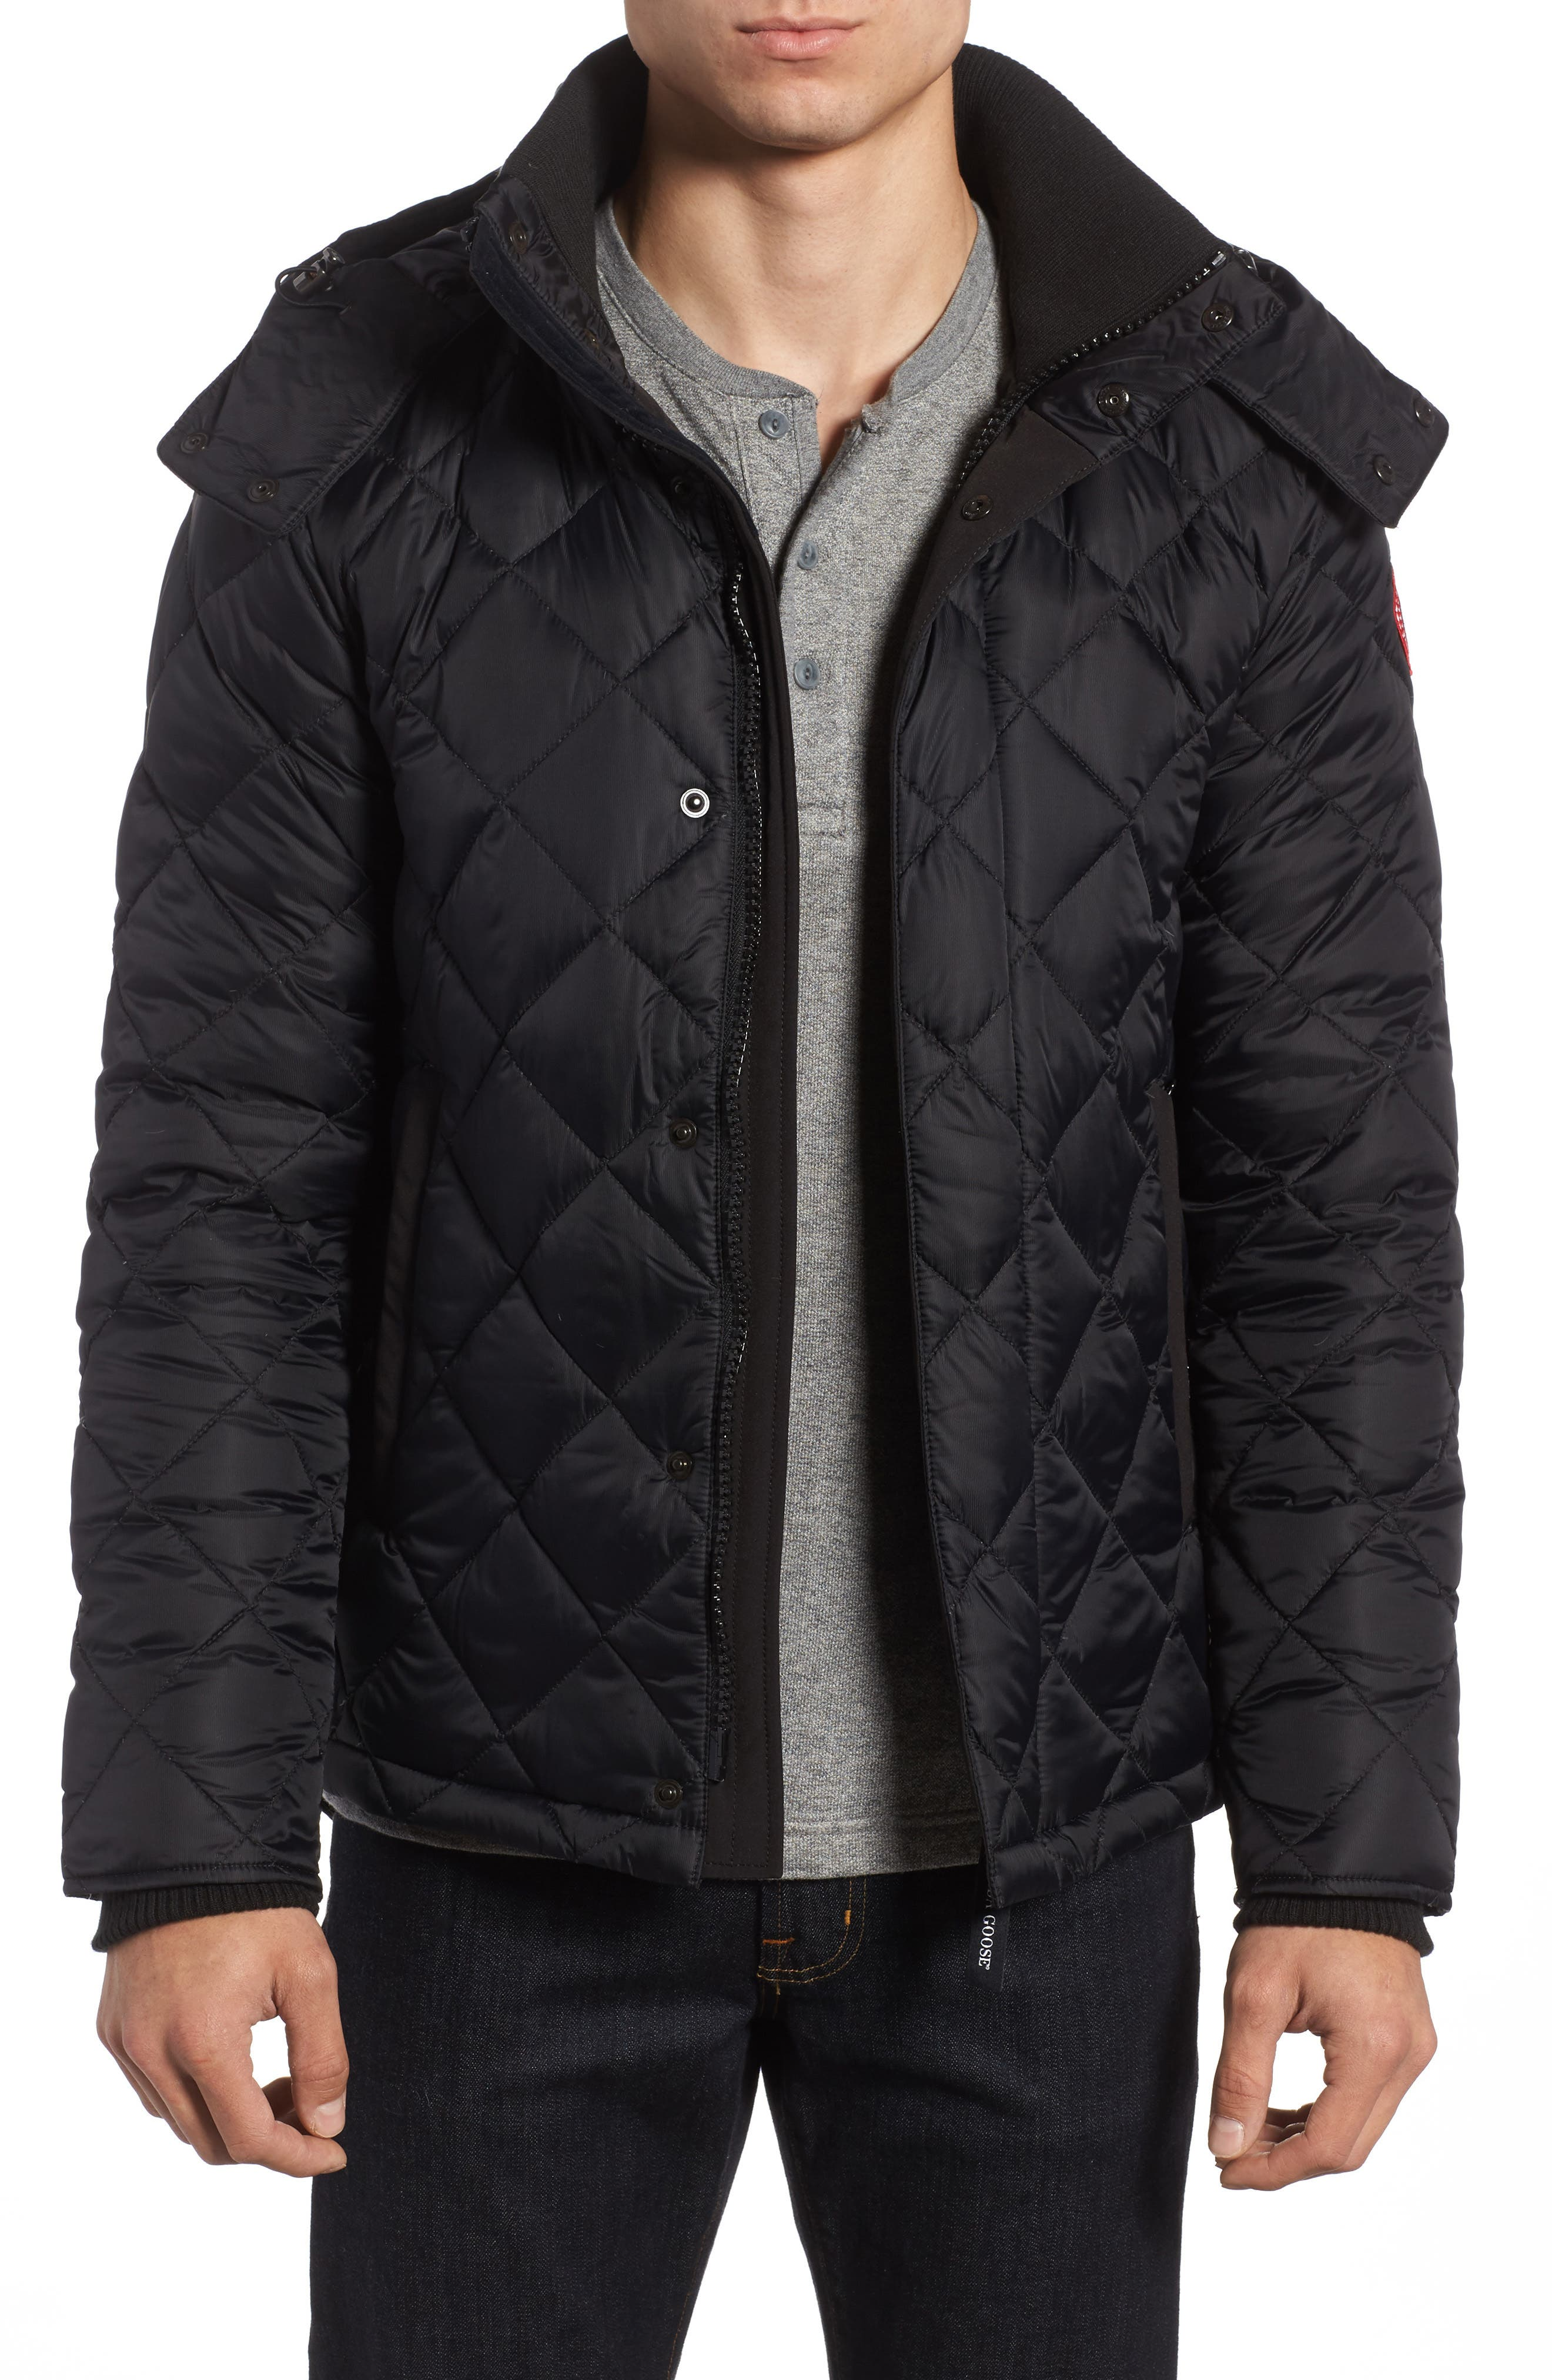 Hendriksen Quilted Down Coat,                         Main,                         color, Black